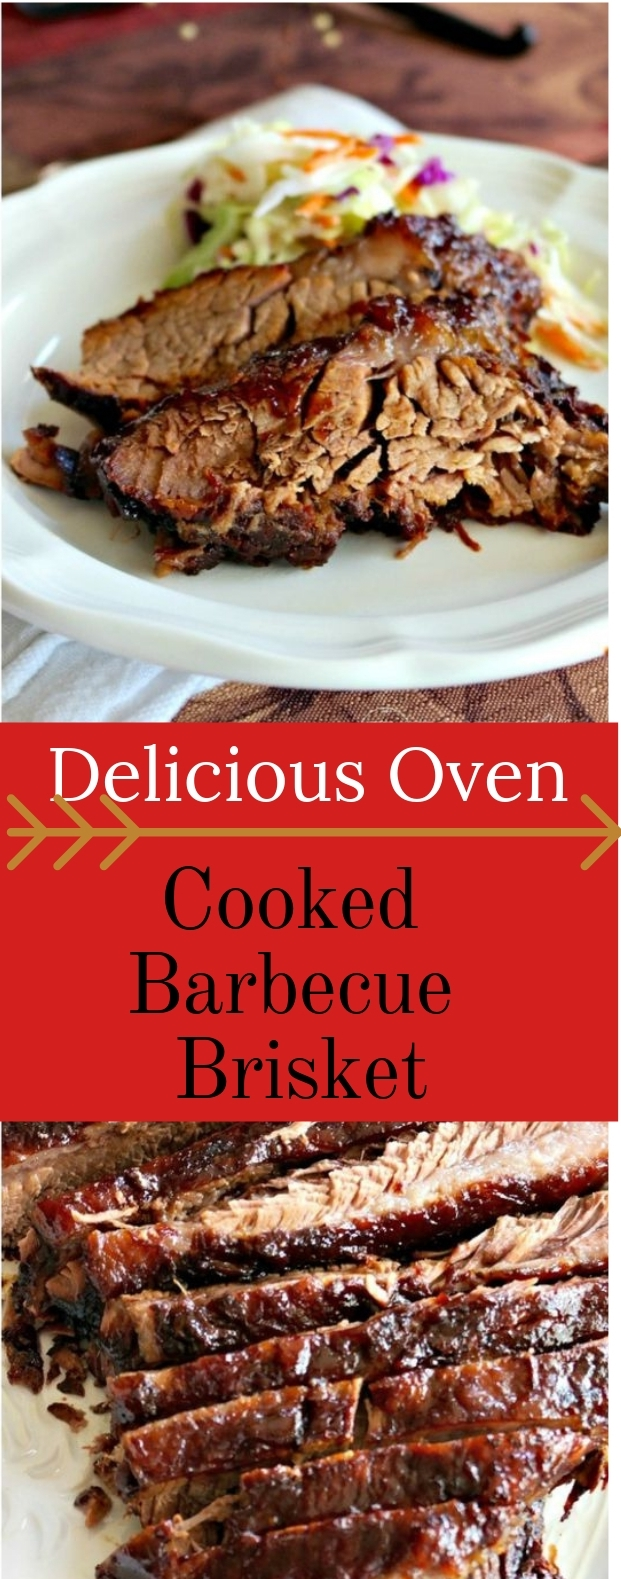 DELICIOUS OVEN COOKED BARBECUE BRISKET #barbecue #easy